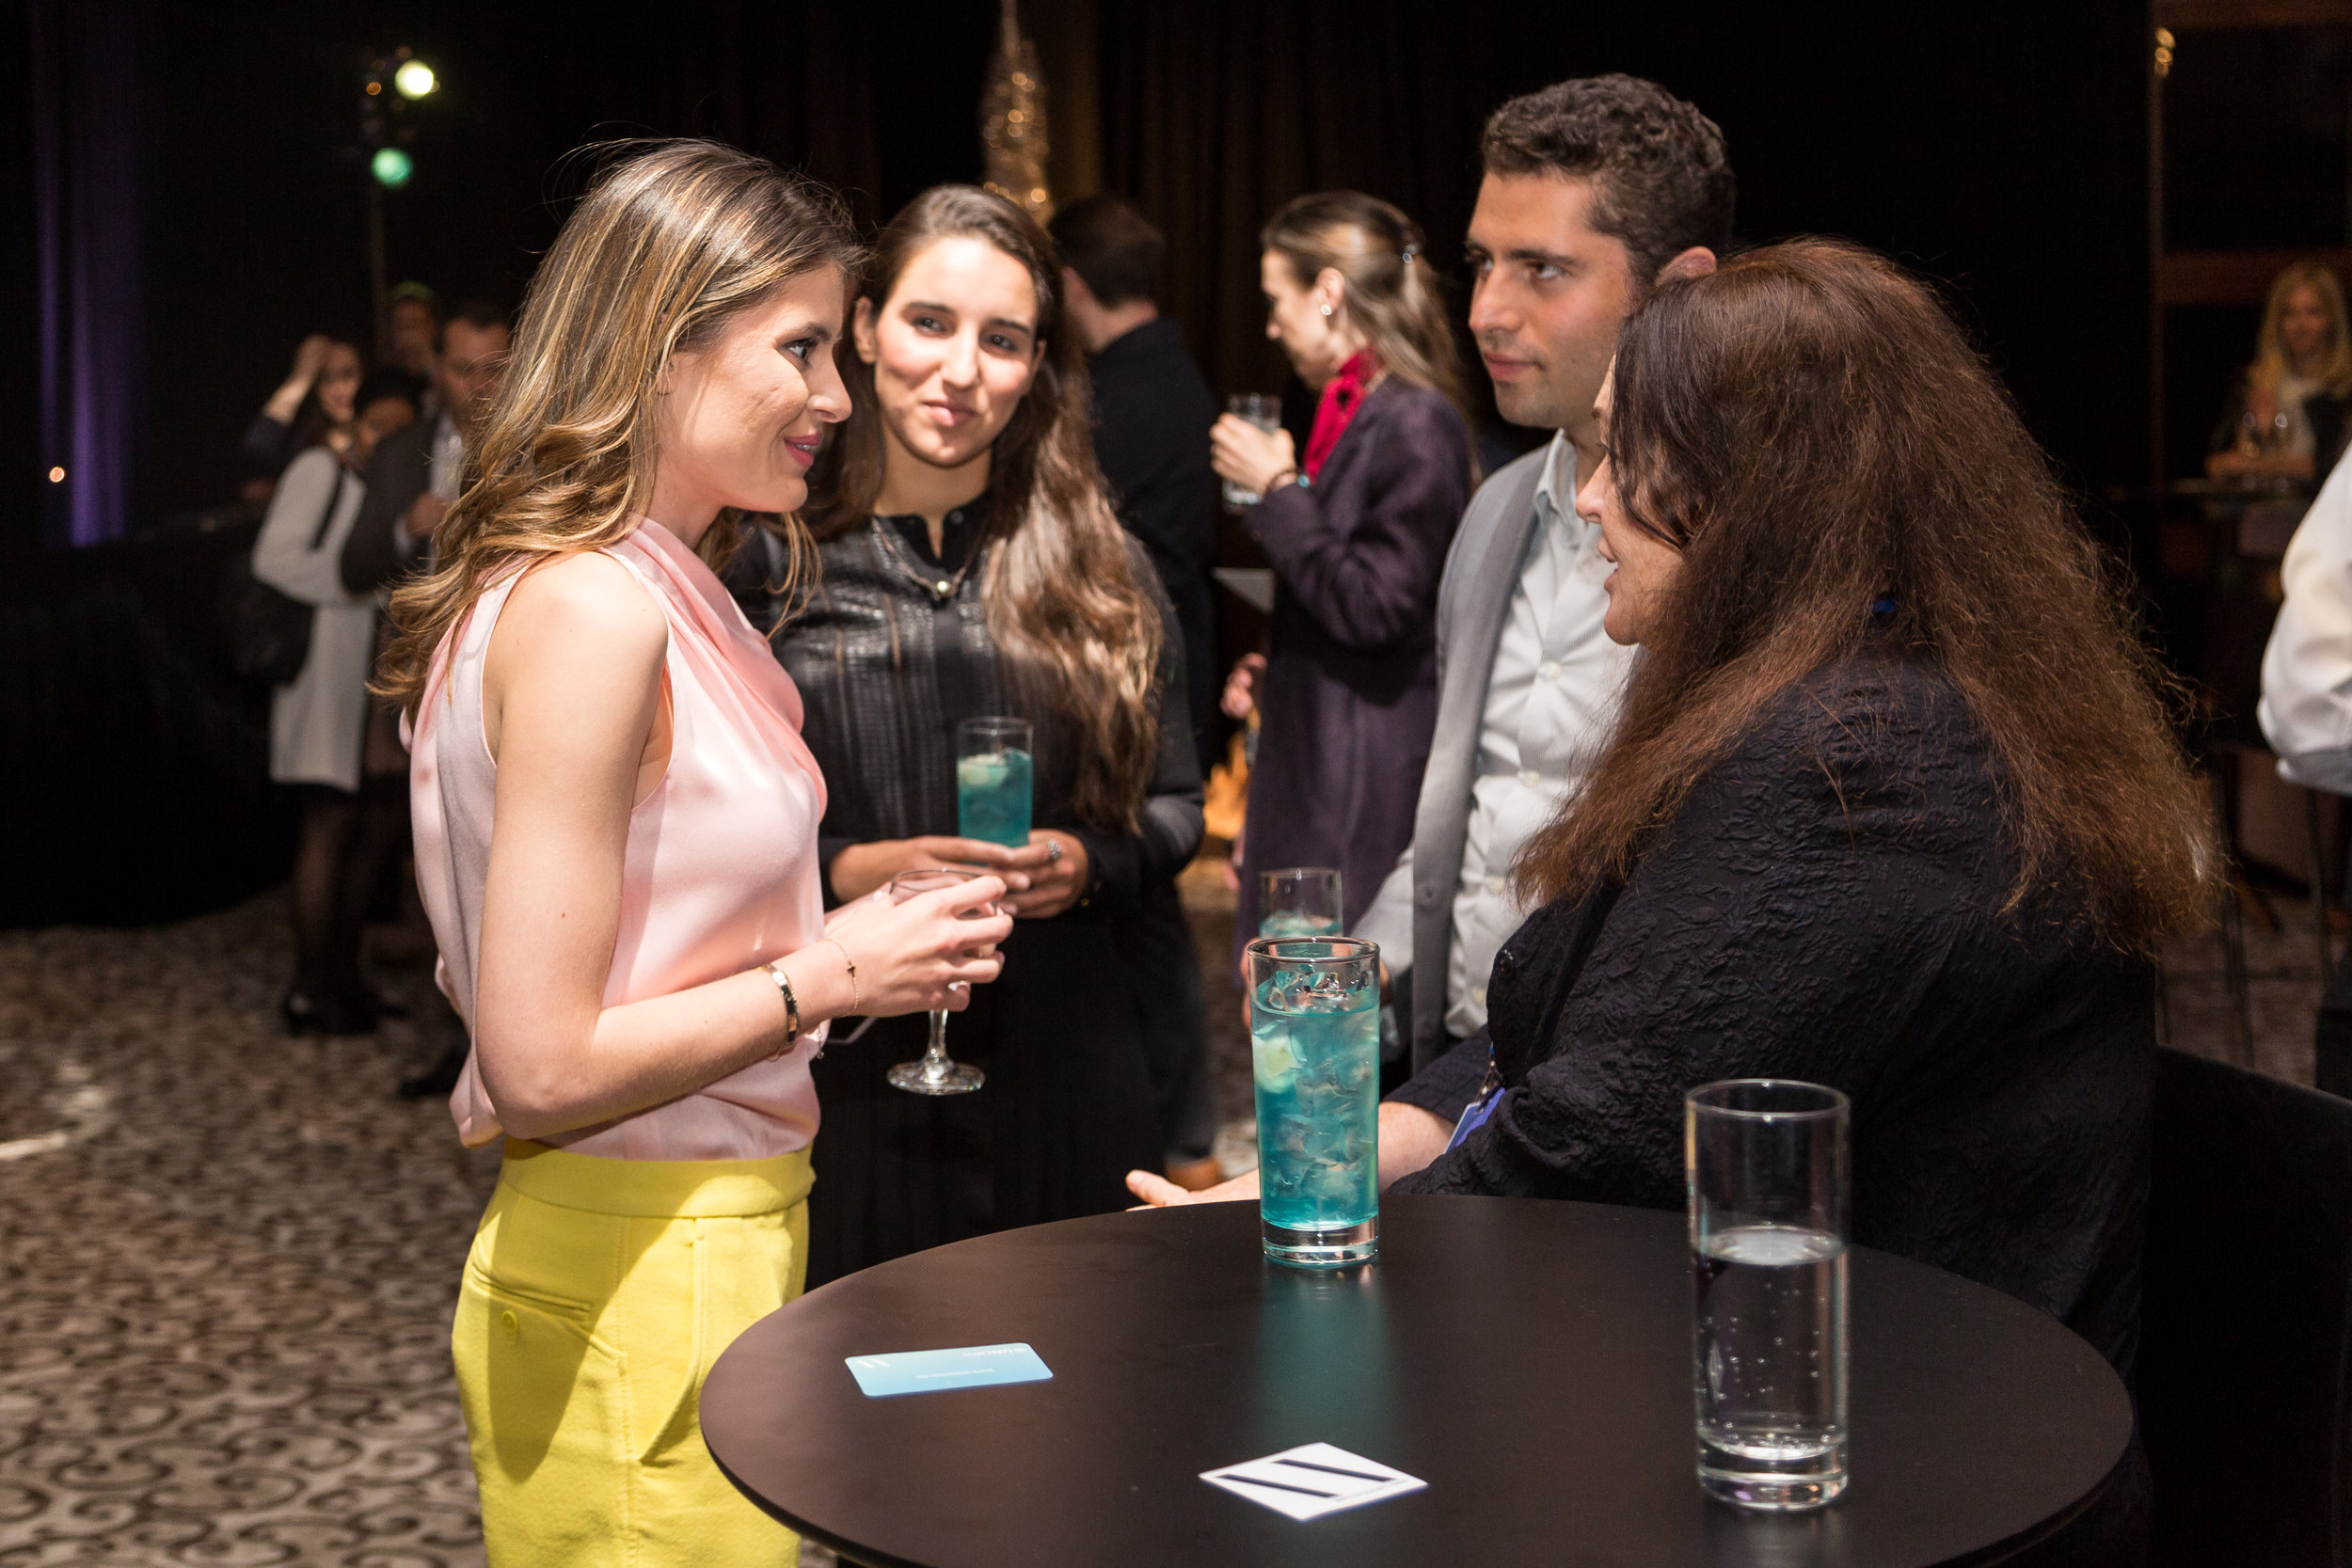 OCEAN GENERATION FOUNDER DAISY KENDRICK CHATTING WITH GUESTS